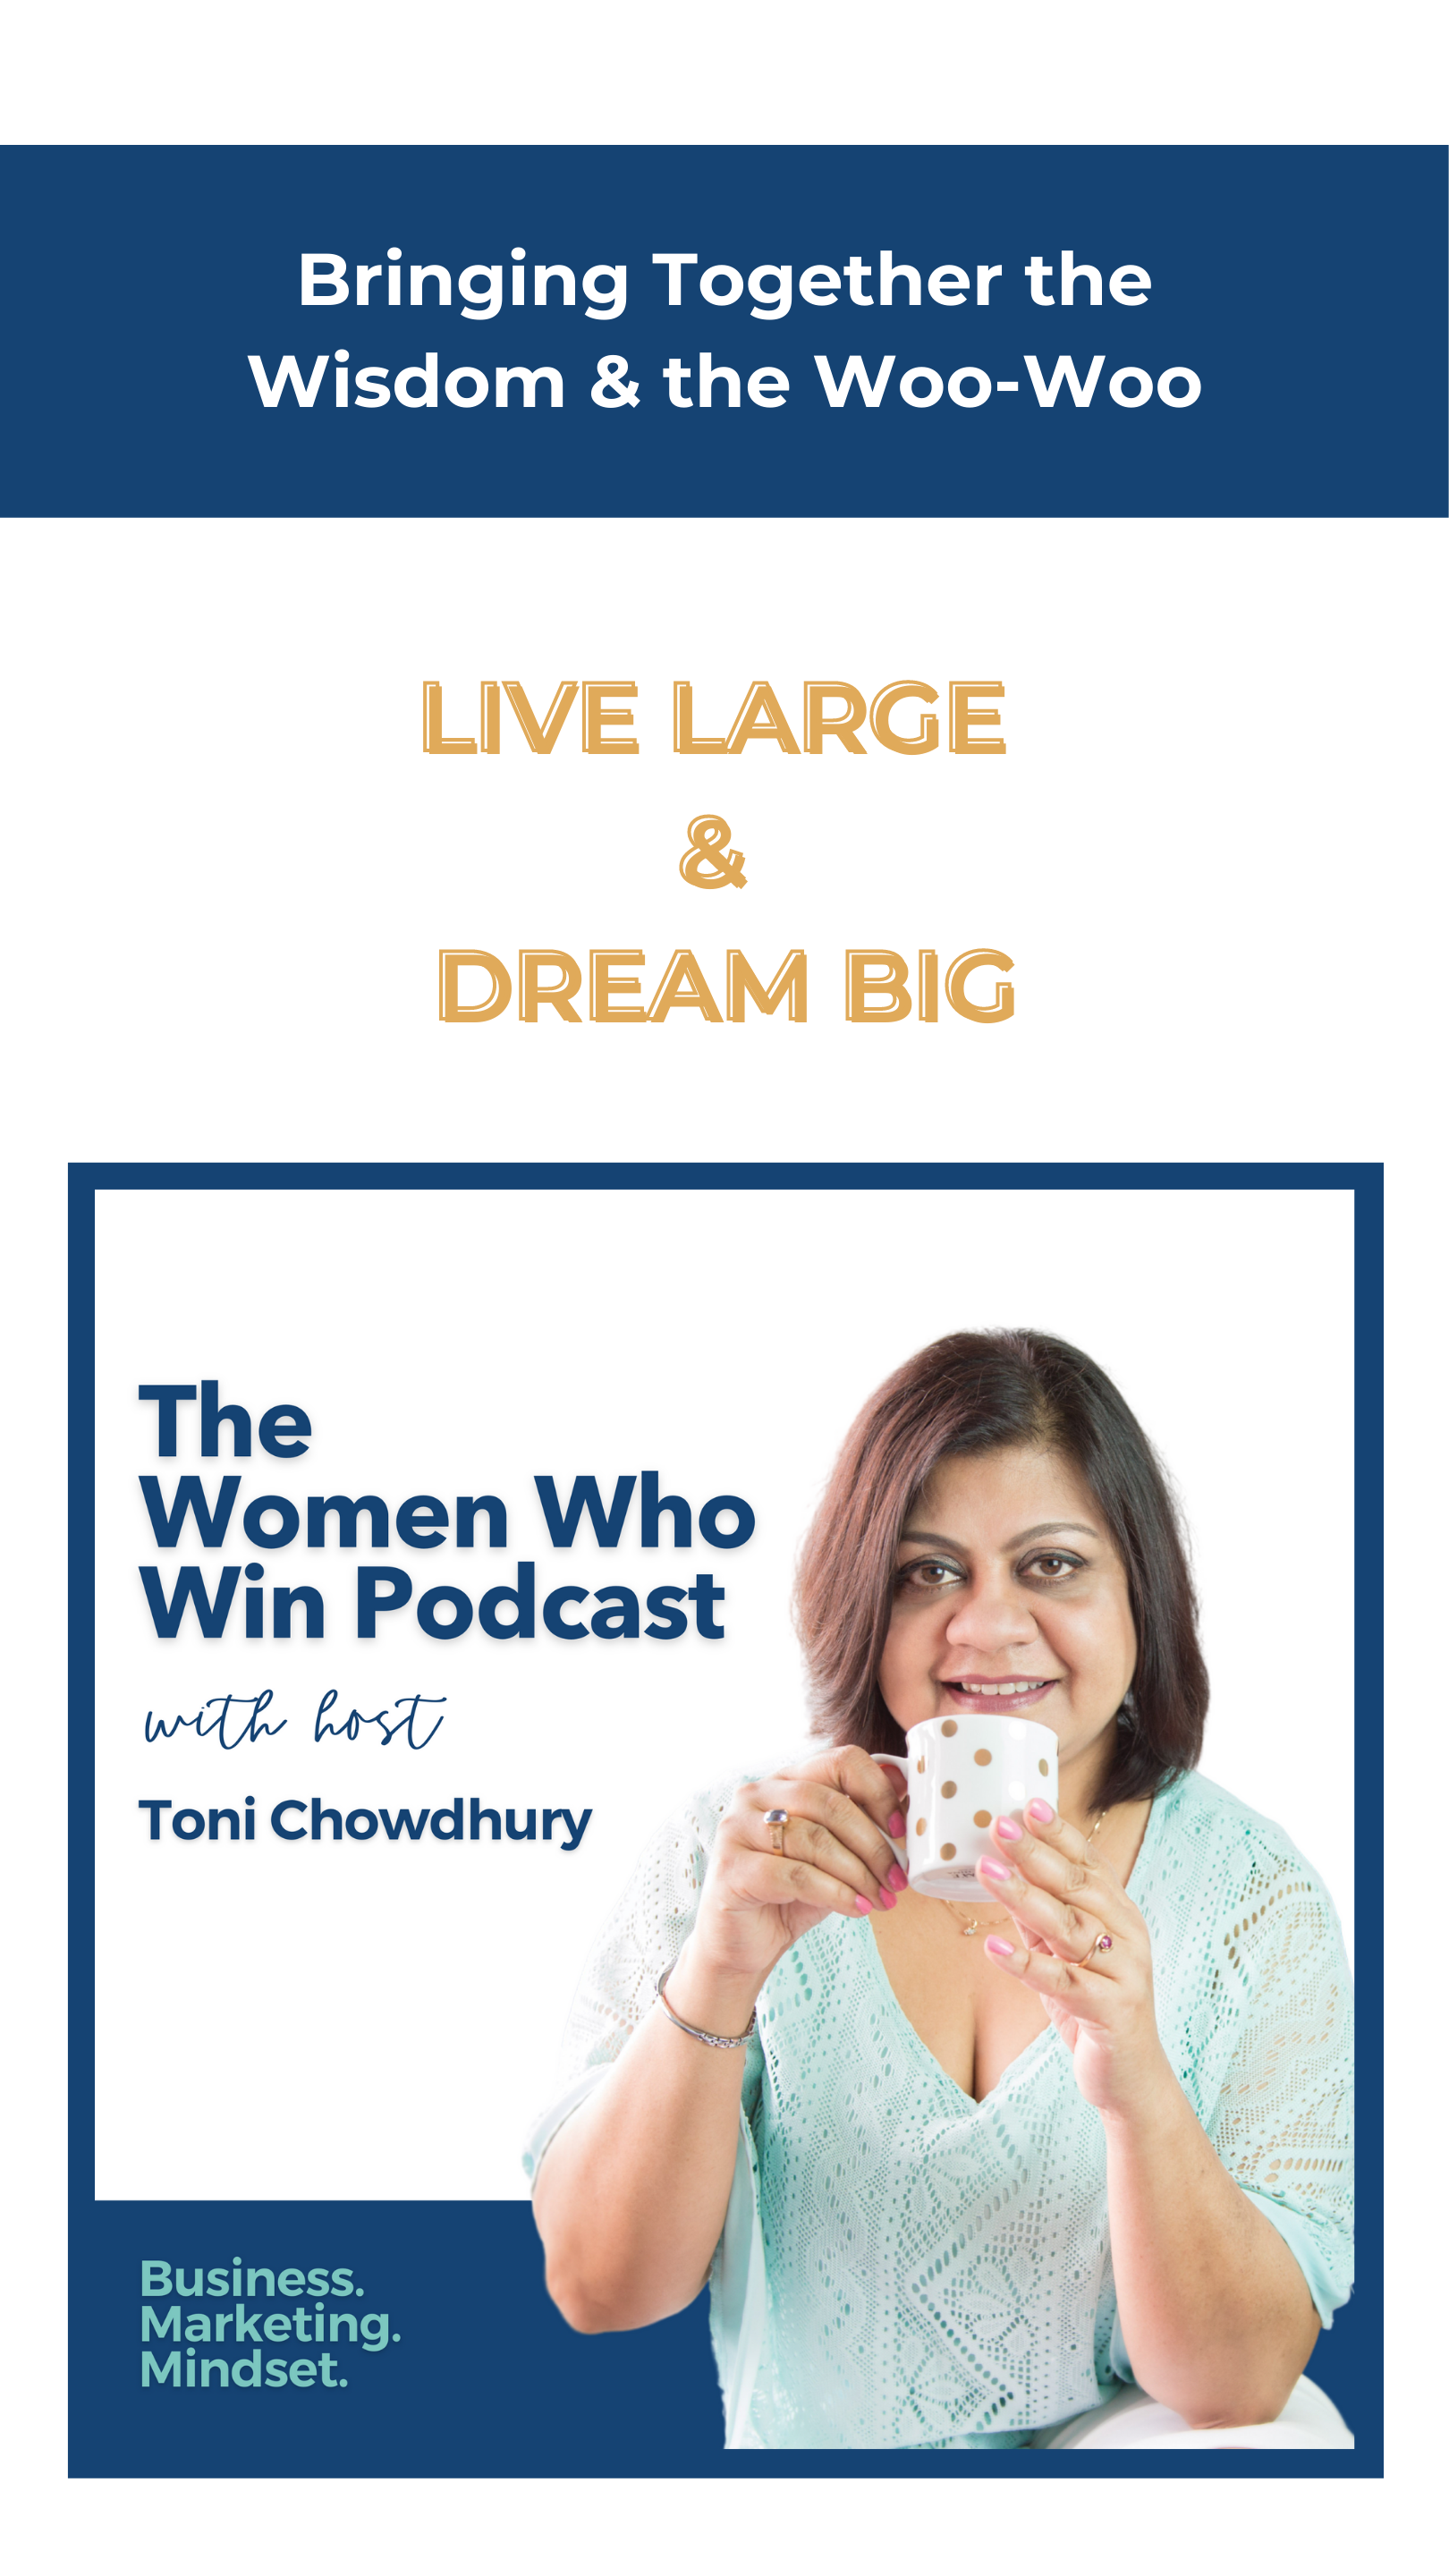 The Women Who Win Podcast with Toni Chowdhury